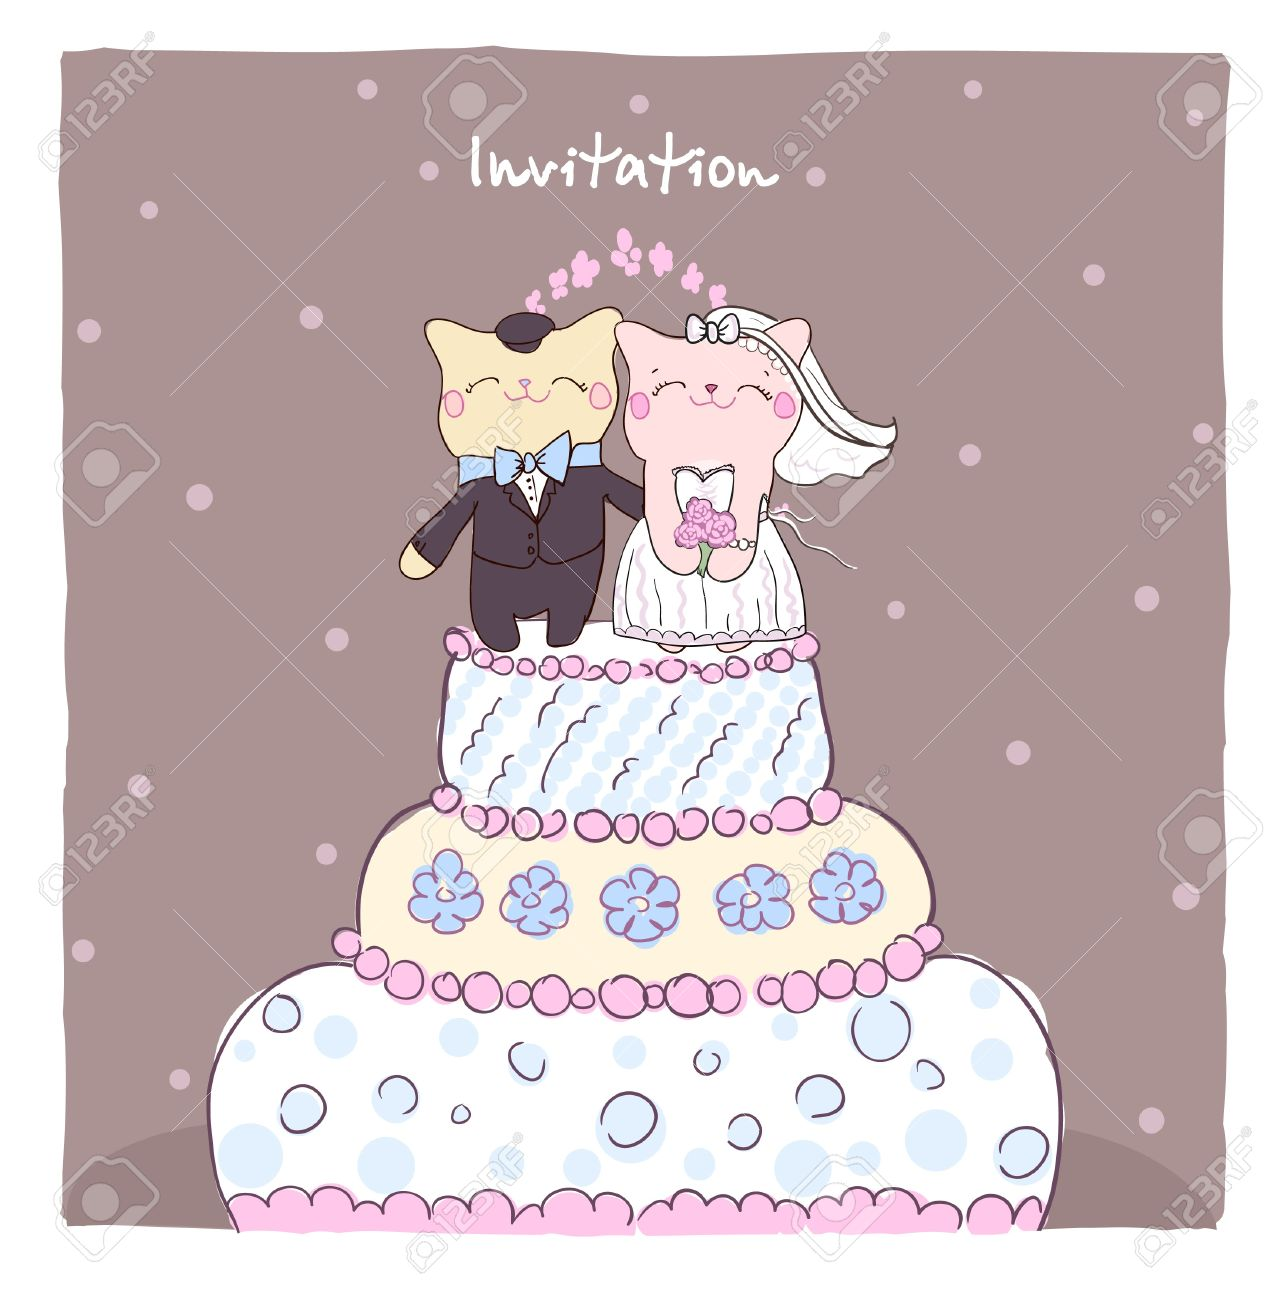 Wedding Invitation Card With Cake Topper Cute Cats Royalty Free ...